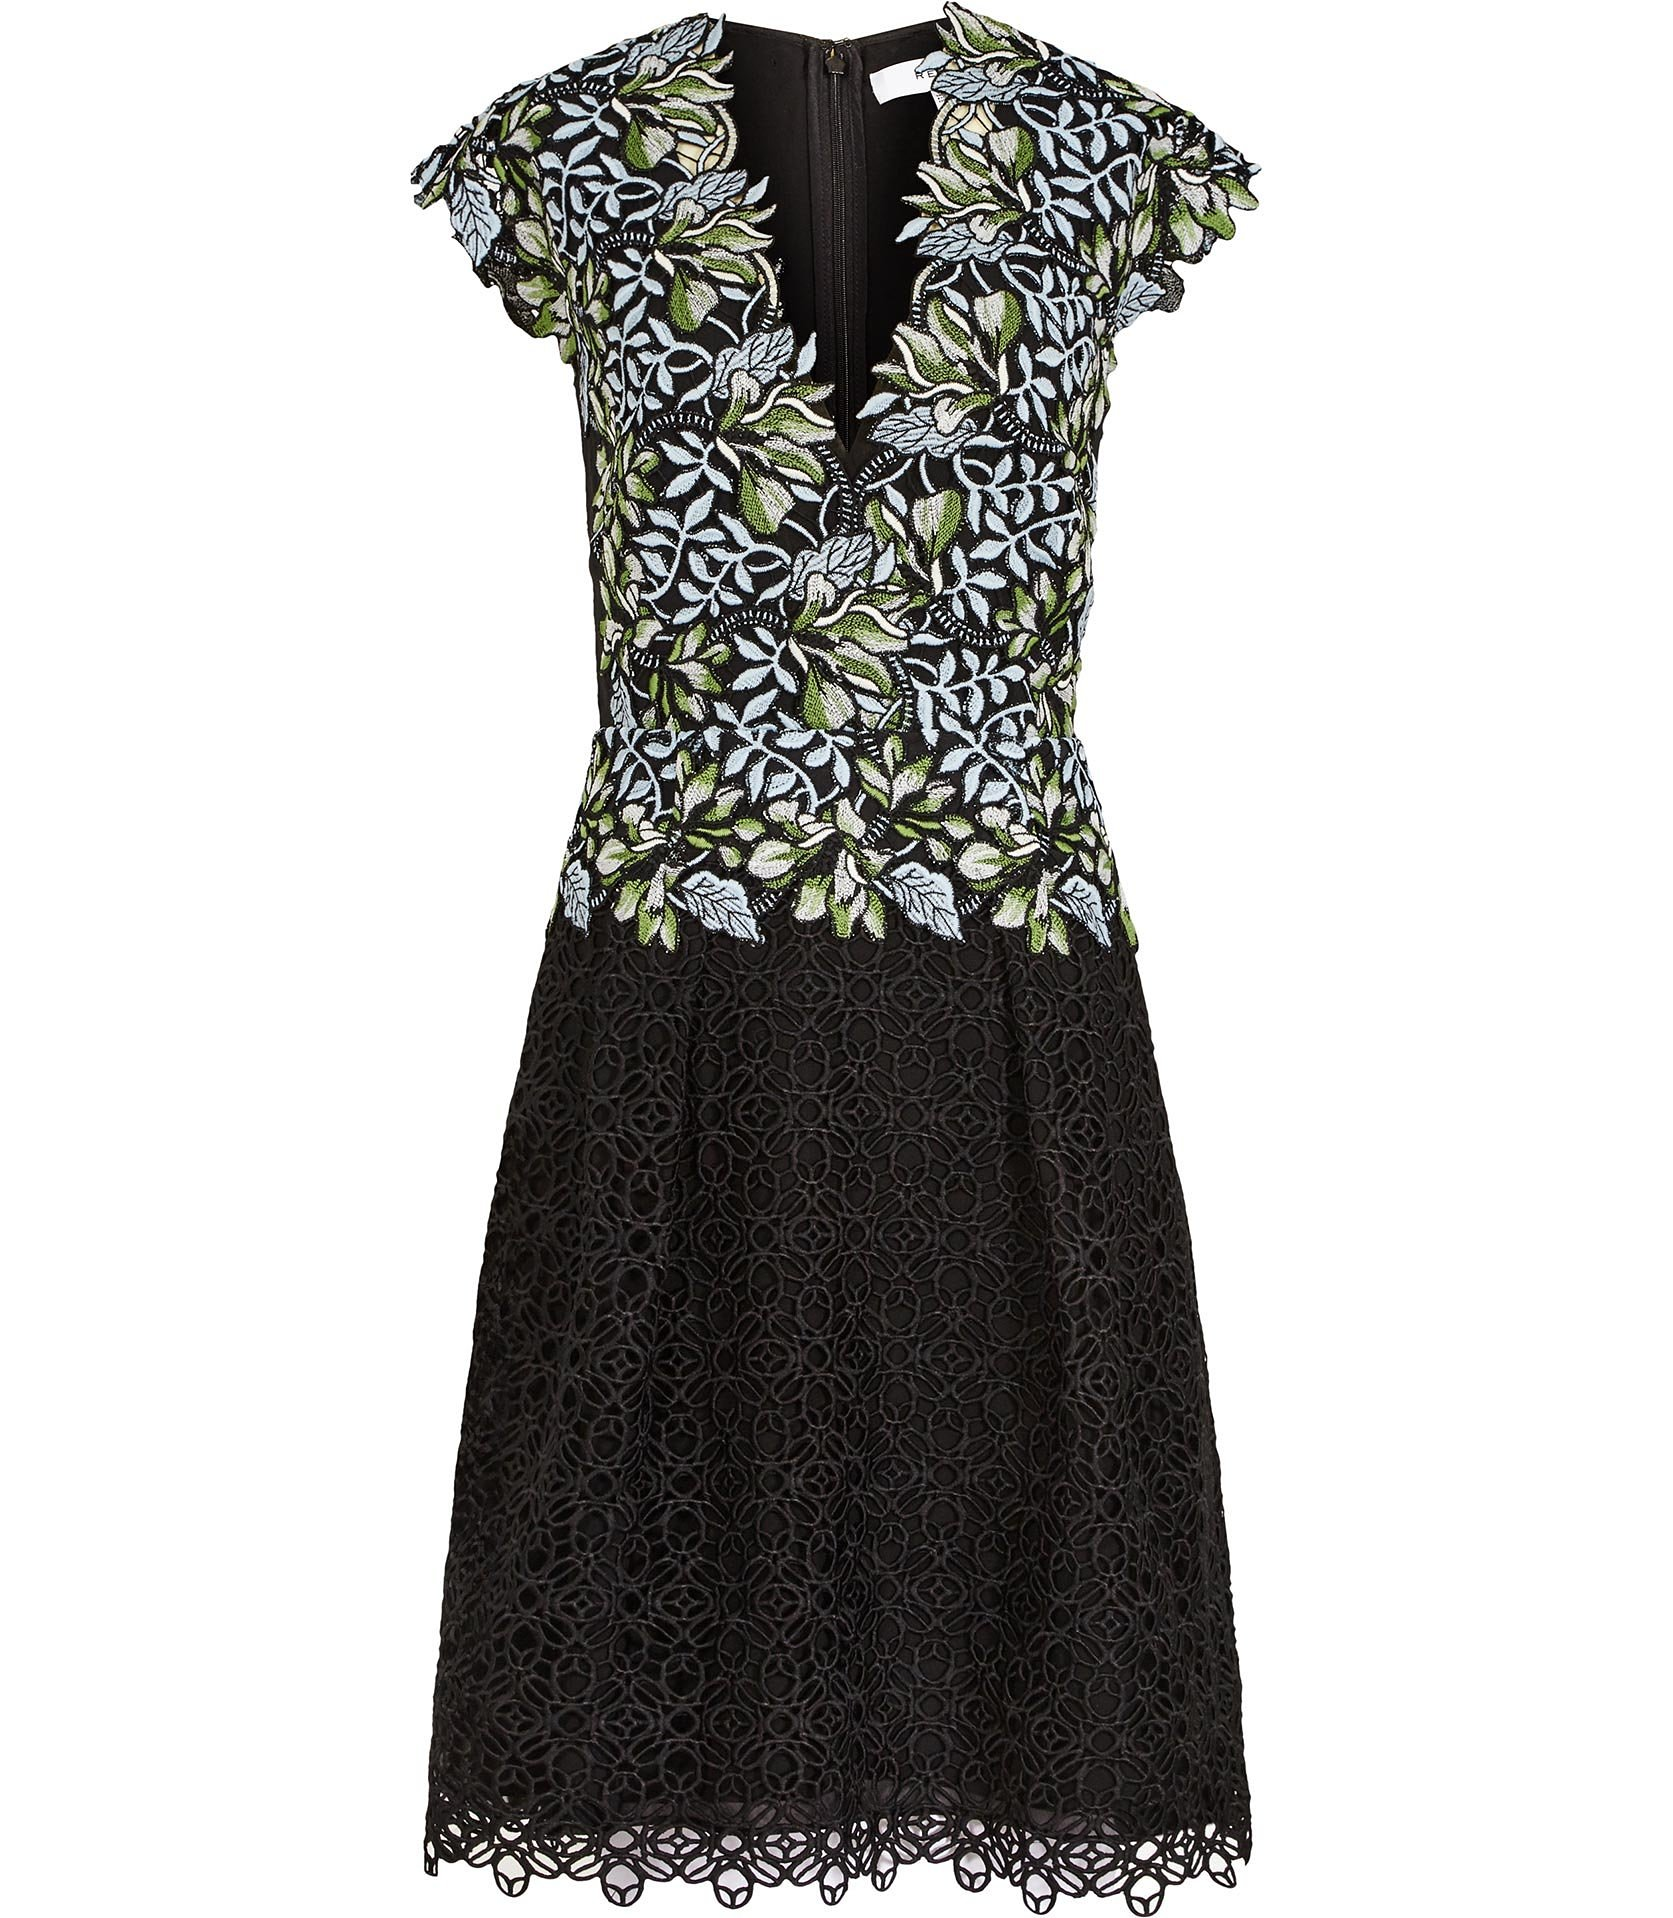 £265.00 at Reiss